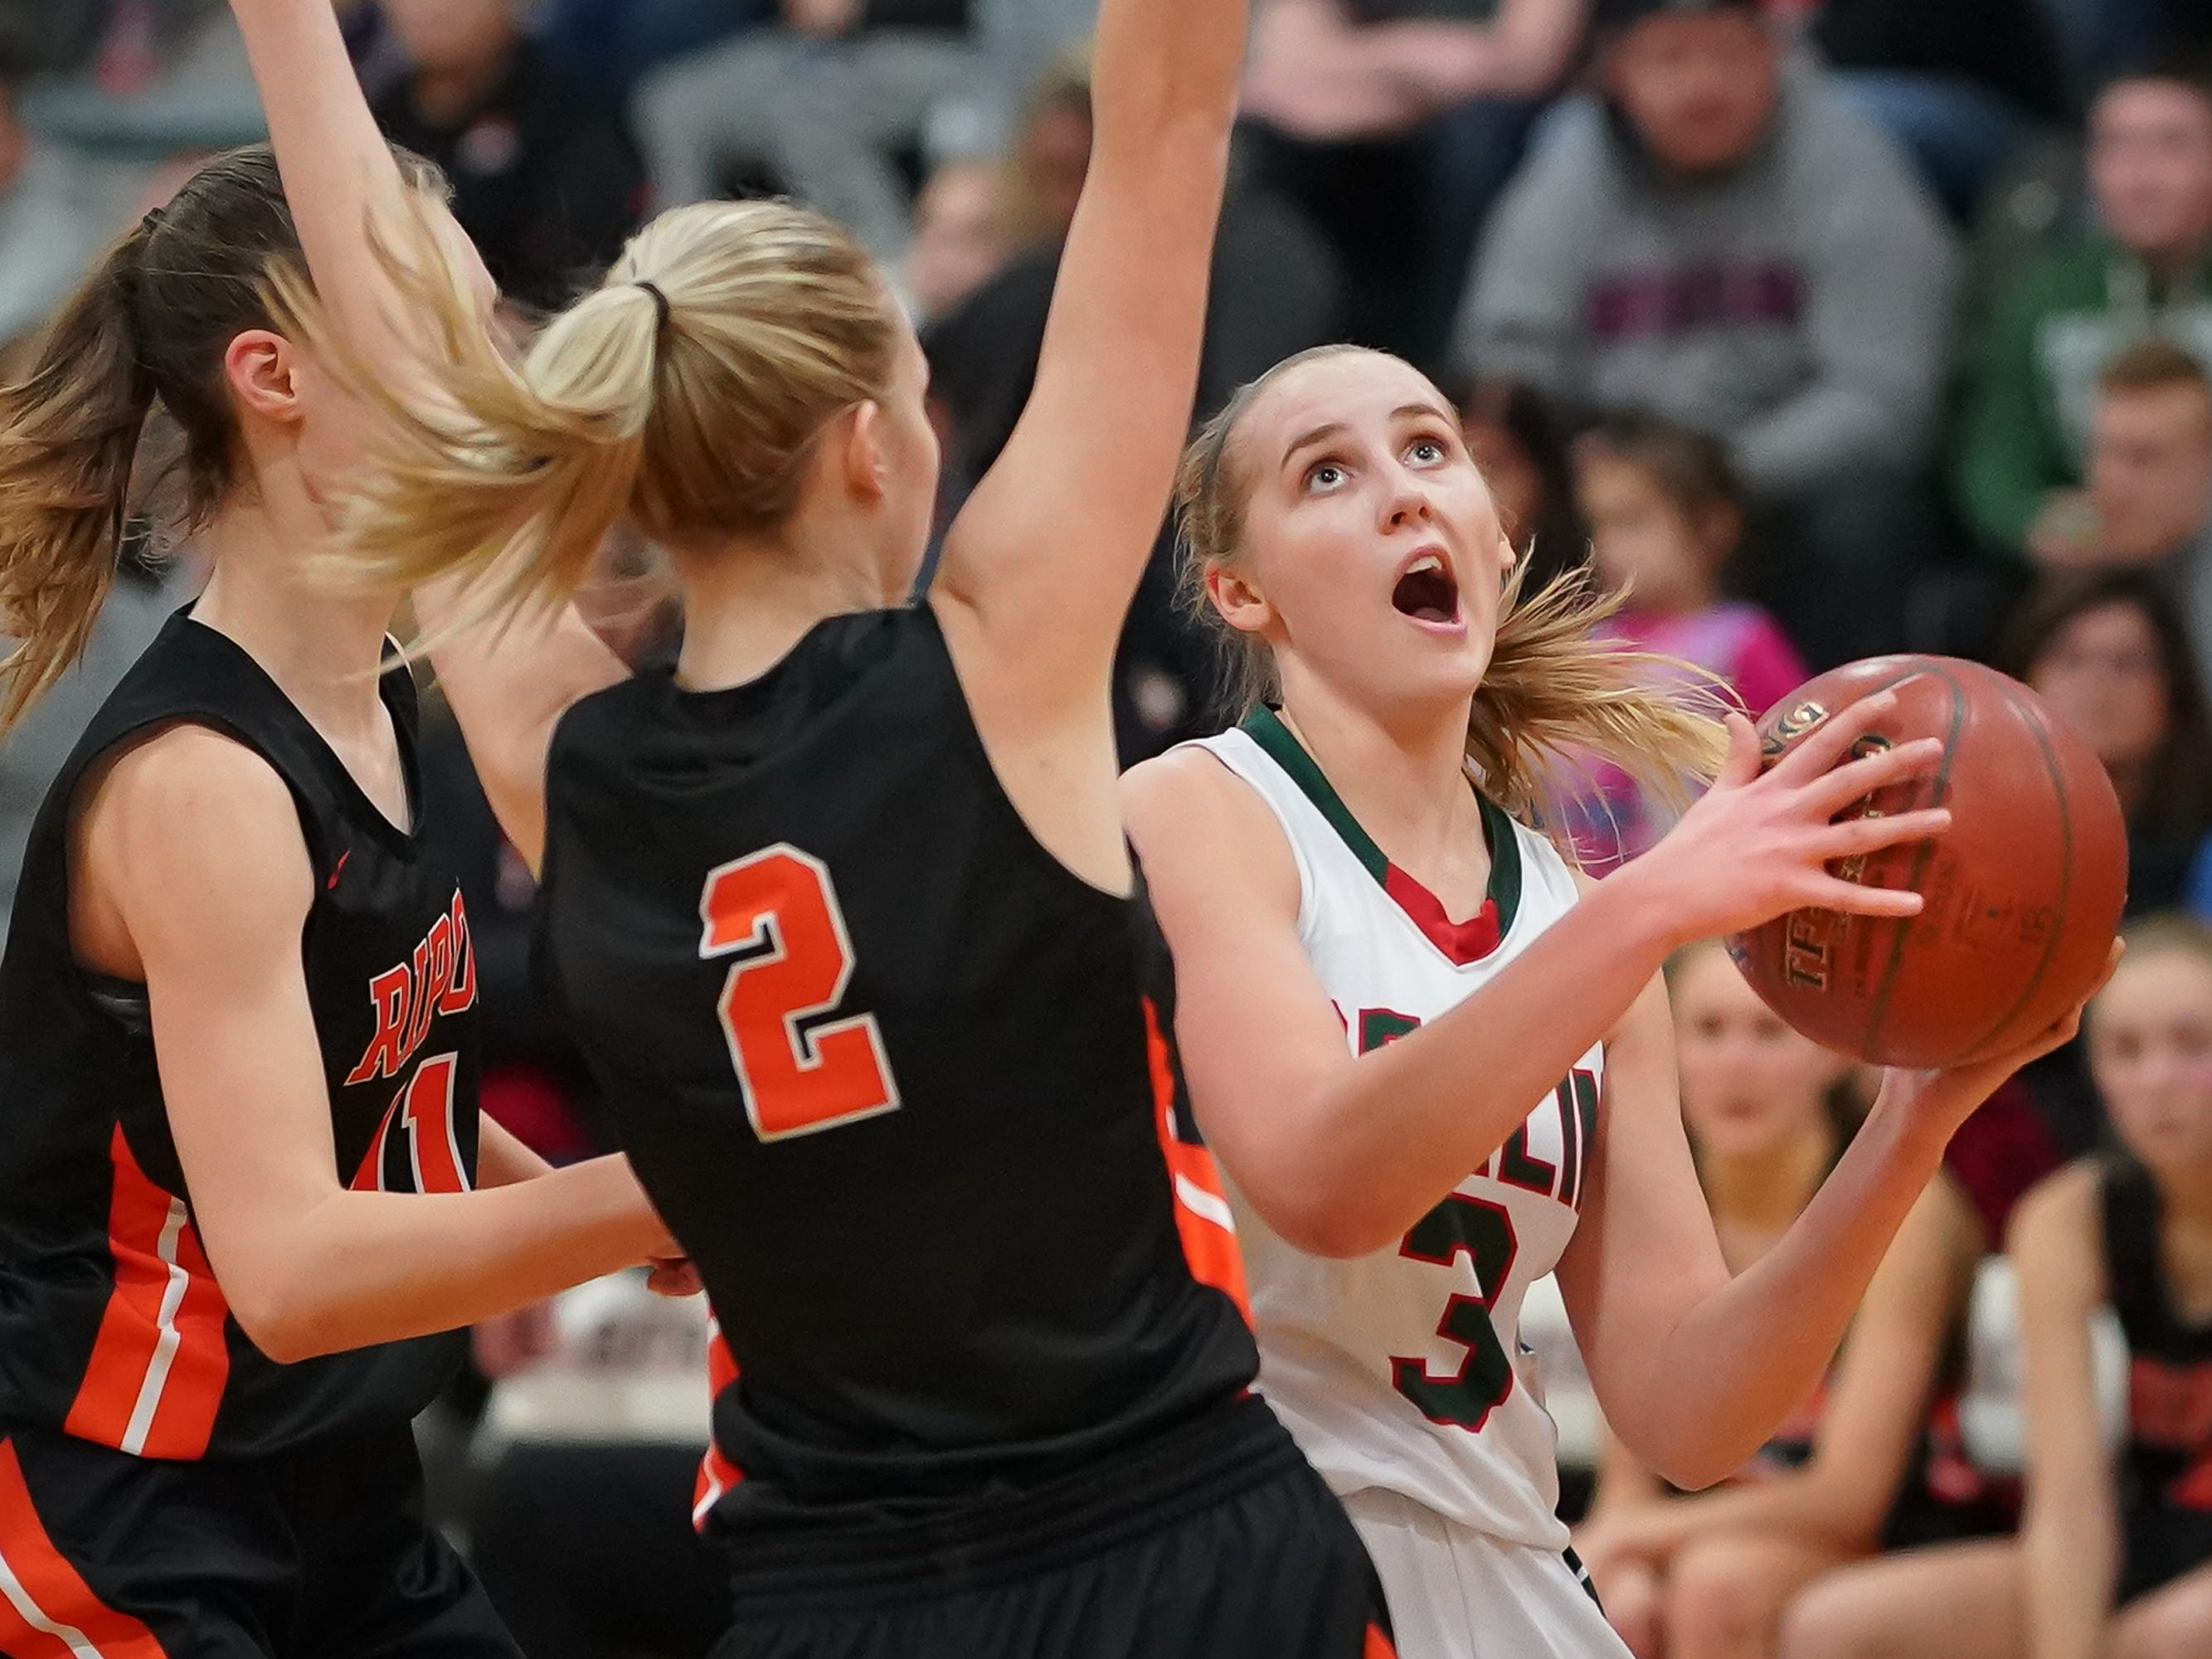 Myah Jodarski (3) of Berlin drives around Grace Burdick (2) of Ripon. The Berlin Indians hosted the Ripon Tigers in an East Central Conference girls basketball matchup Friday evening, December 21, 2018.